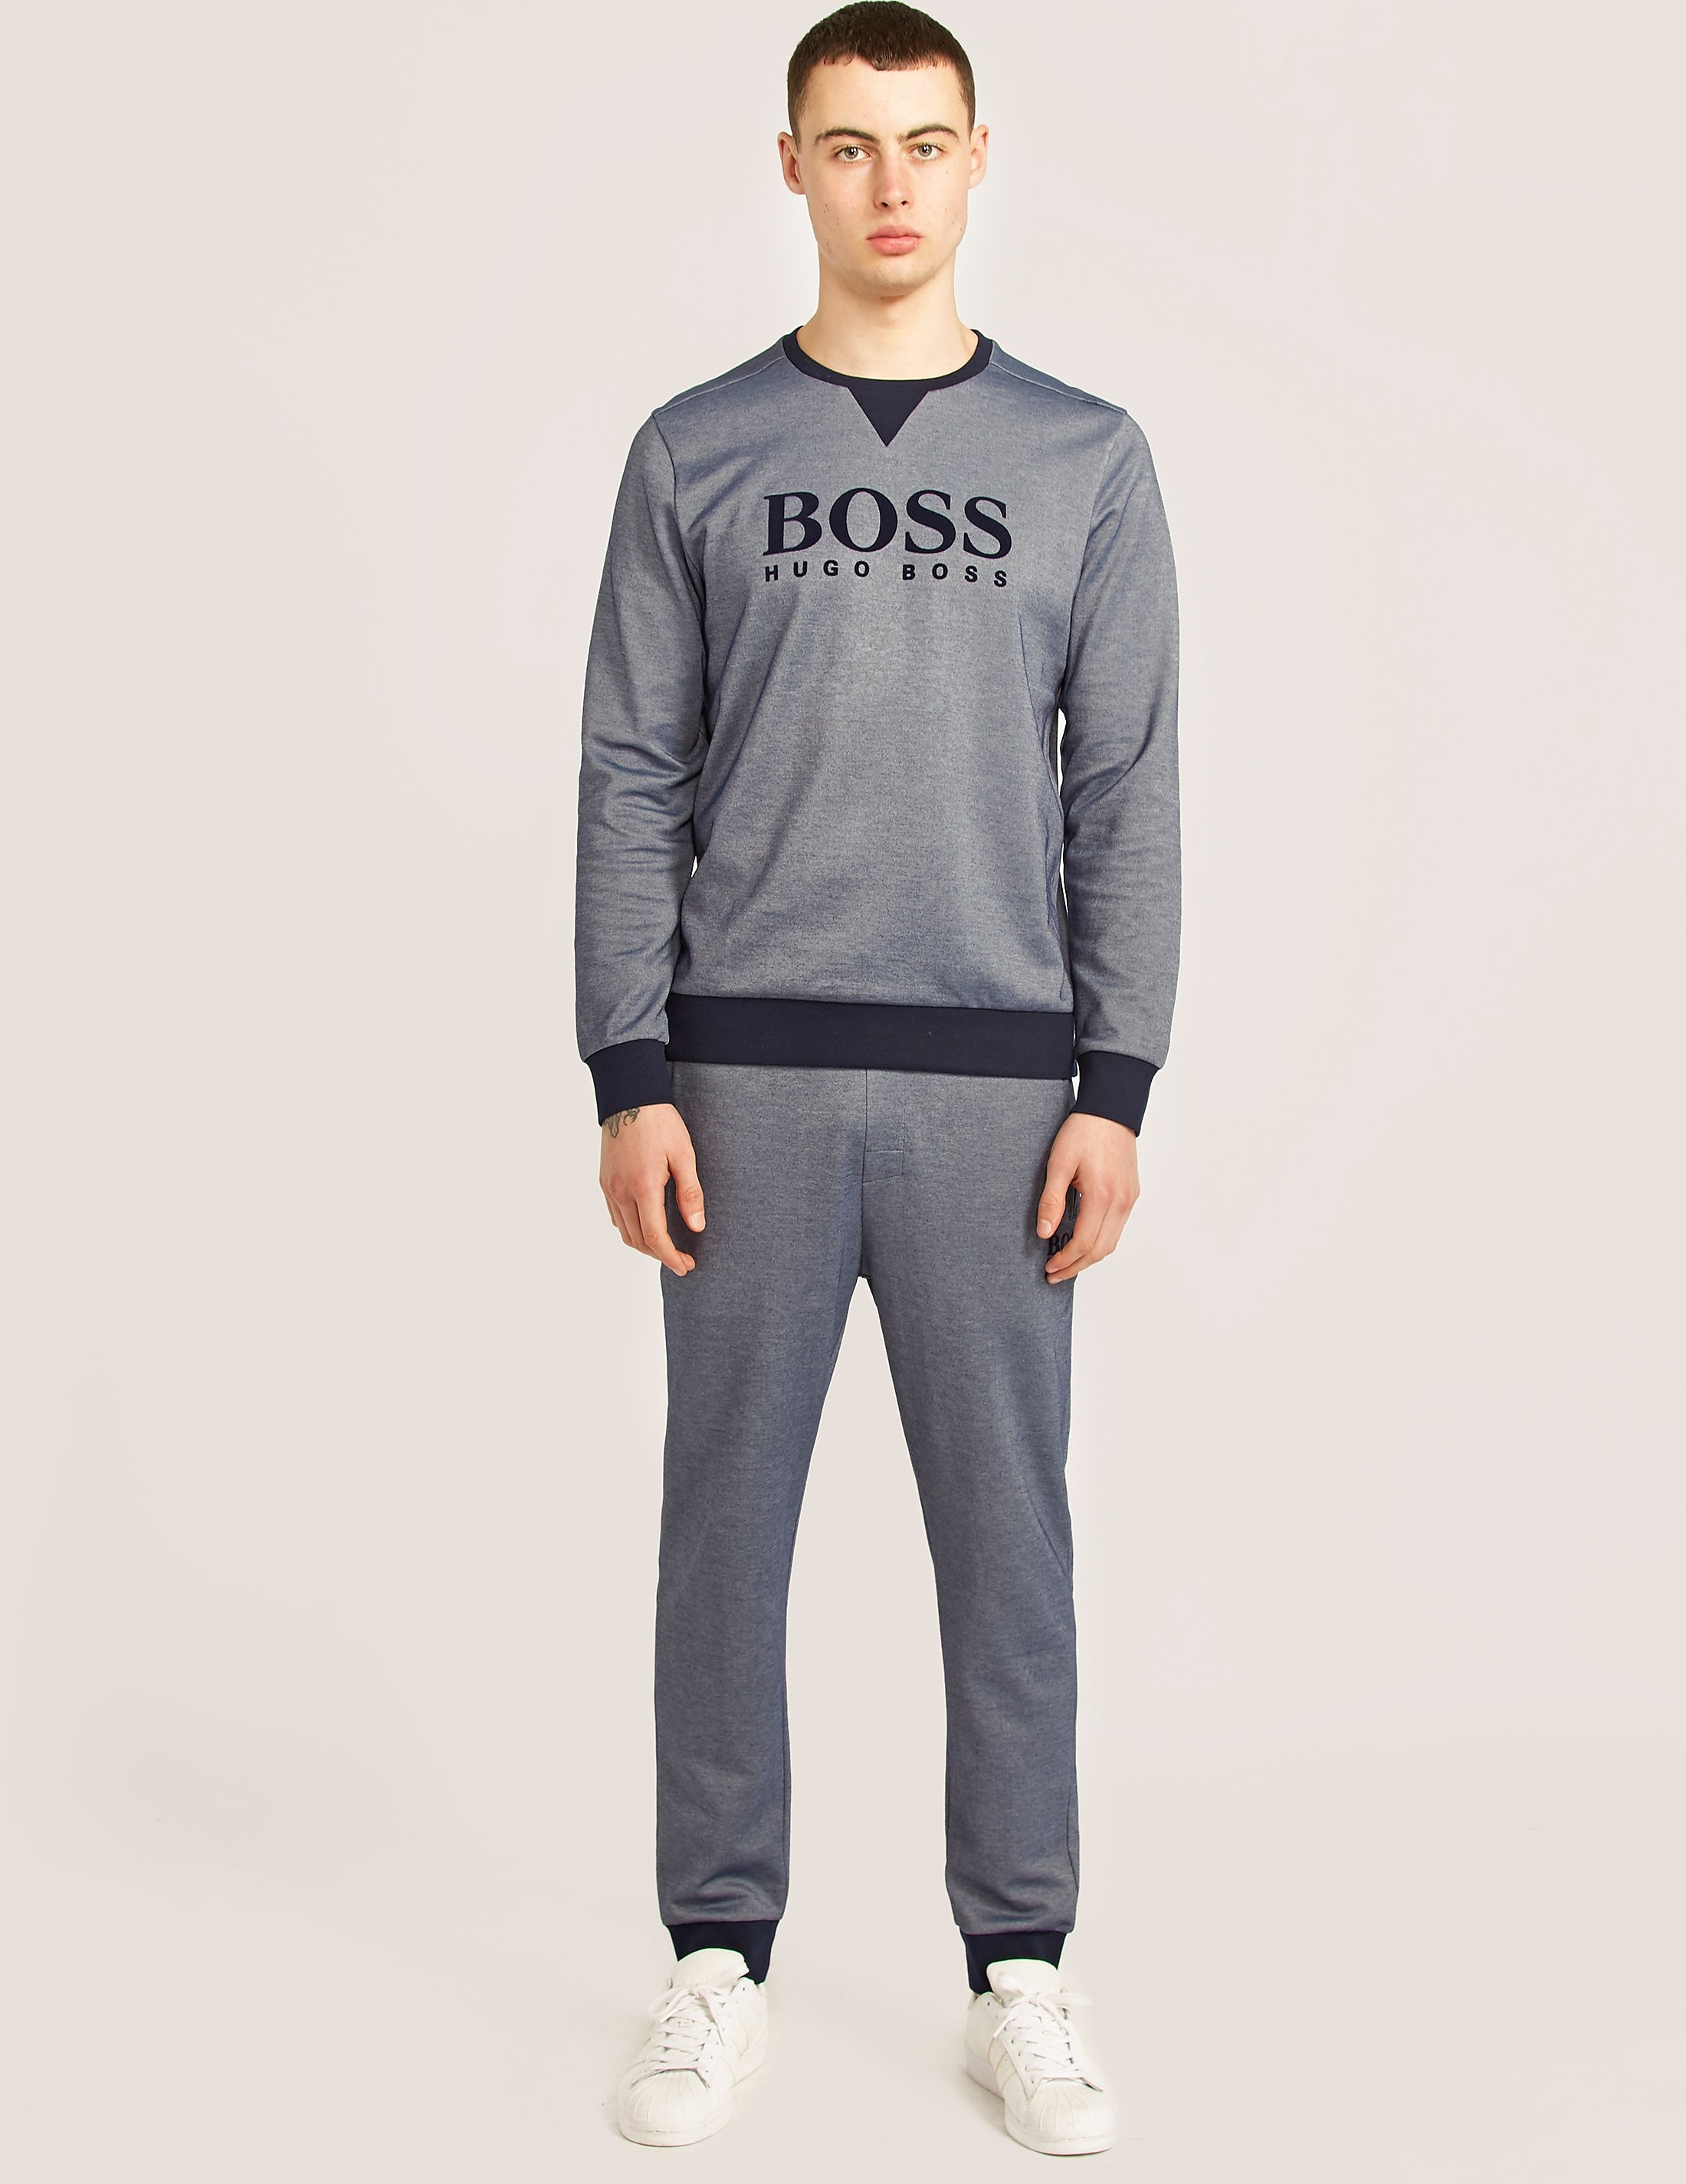 BOSS Cuff Trackpants